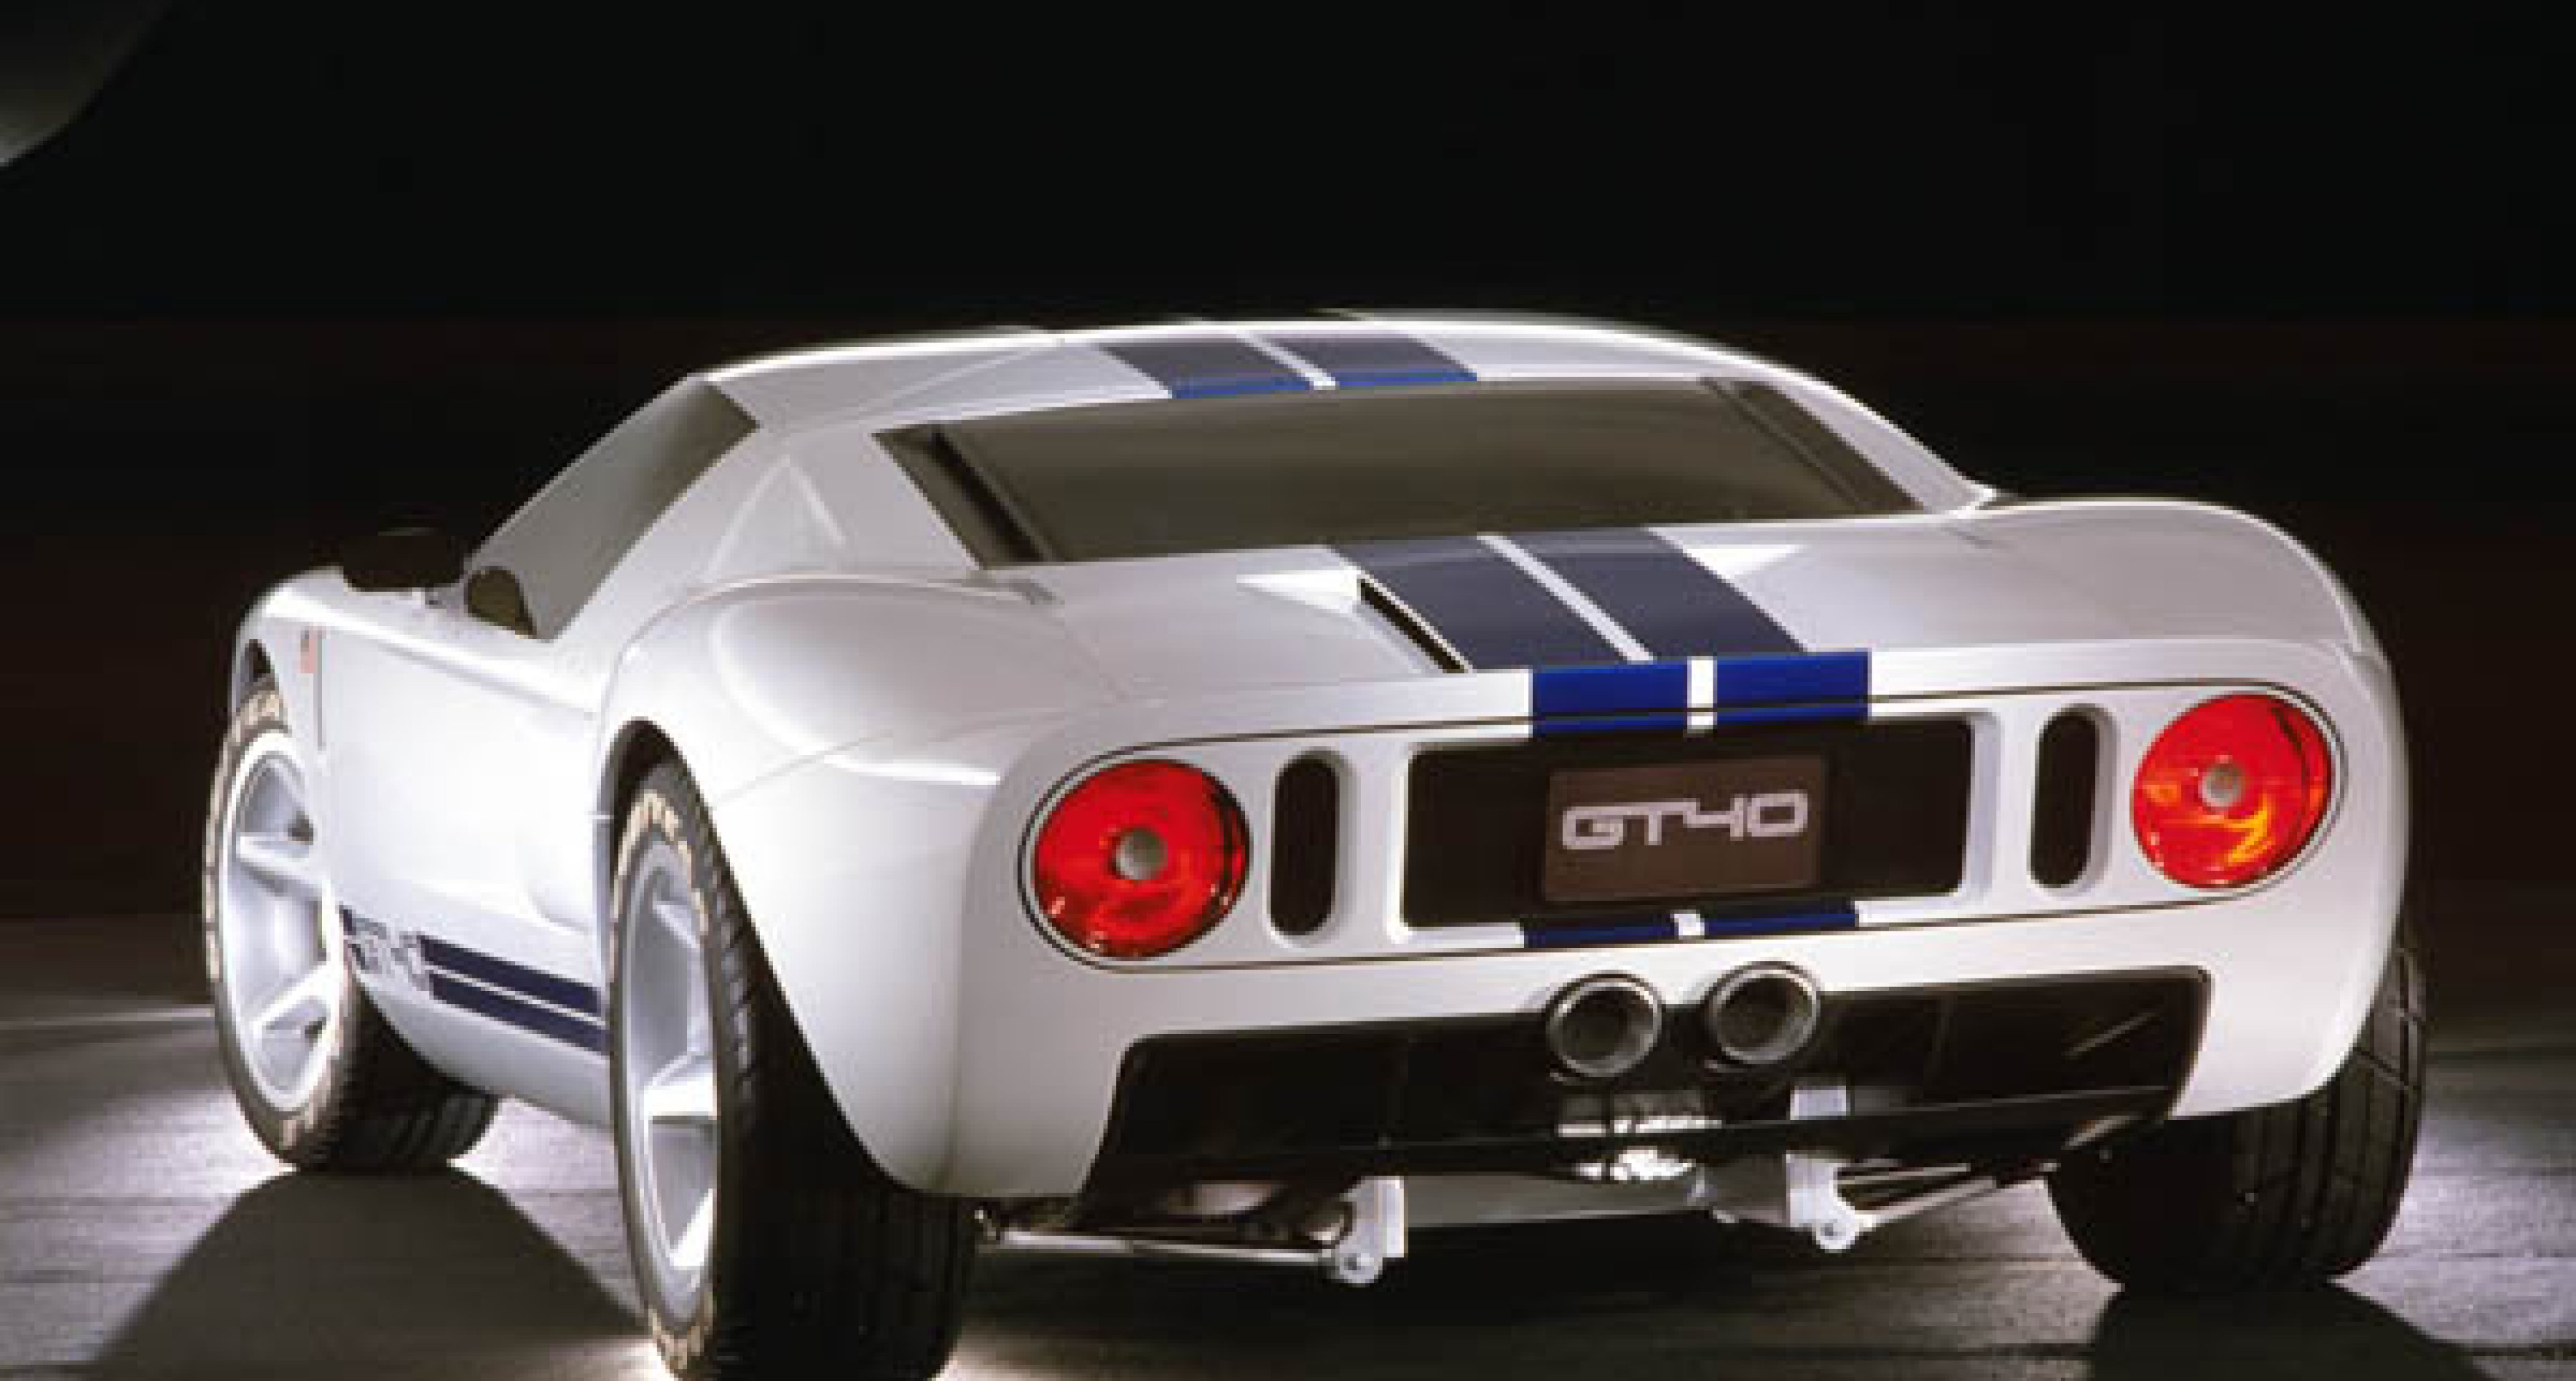 Ford GT40 2003 - sales structure and price guide announced